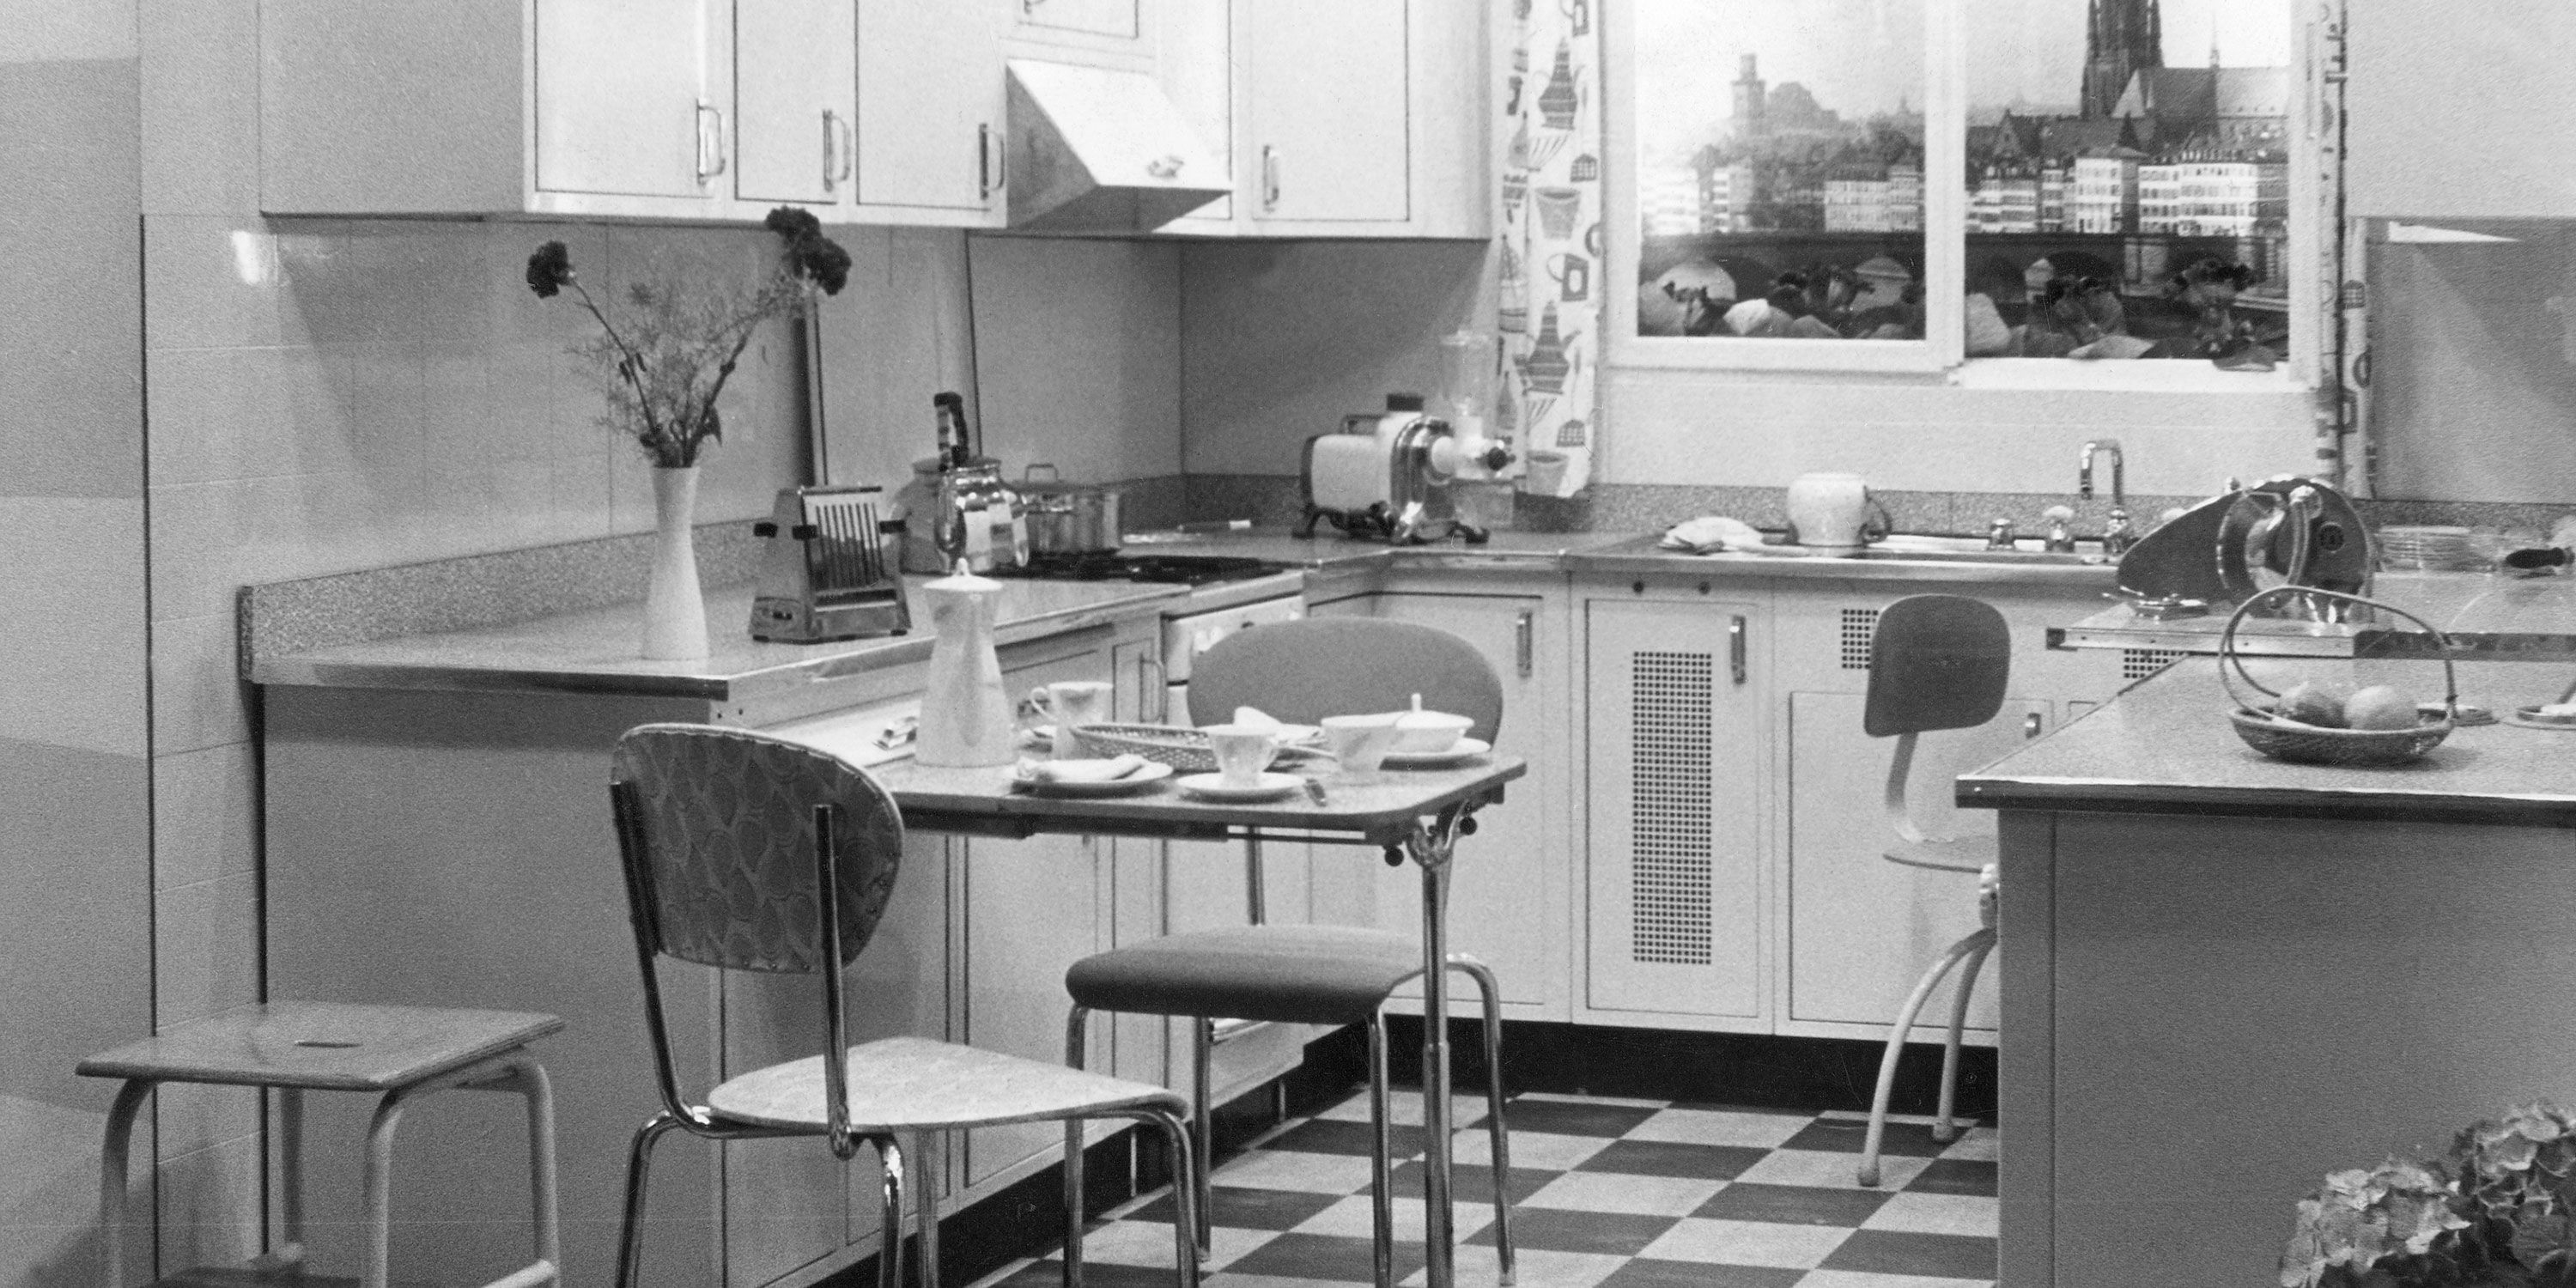 5 Ways Your Home Has Changed Since The 1950s